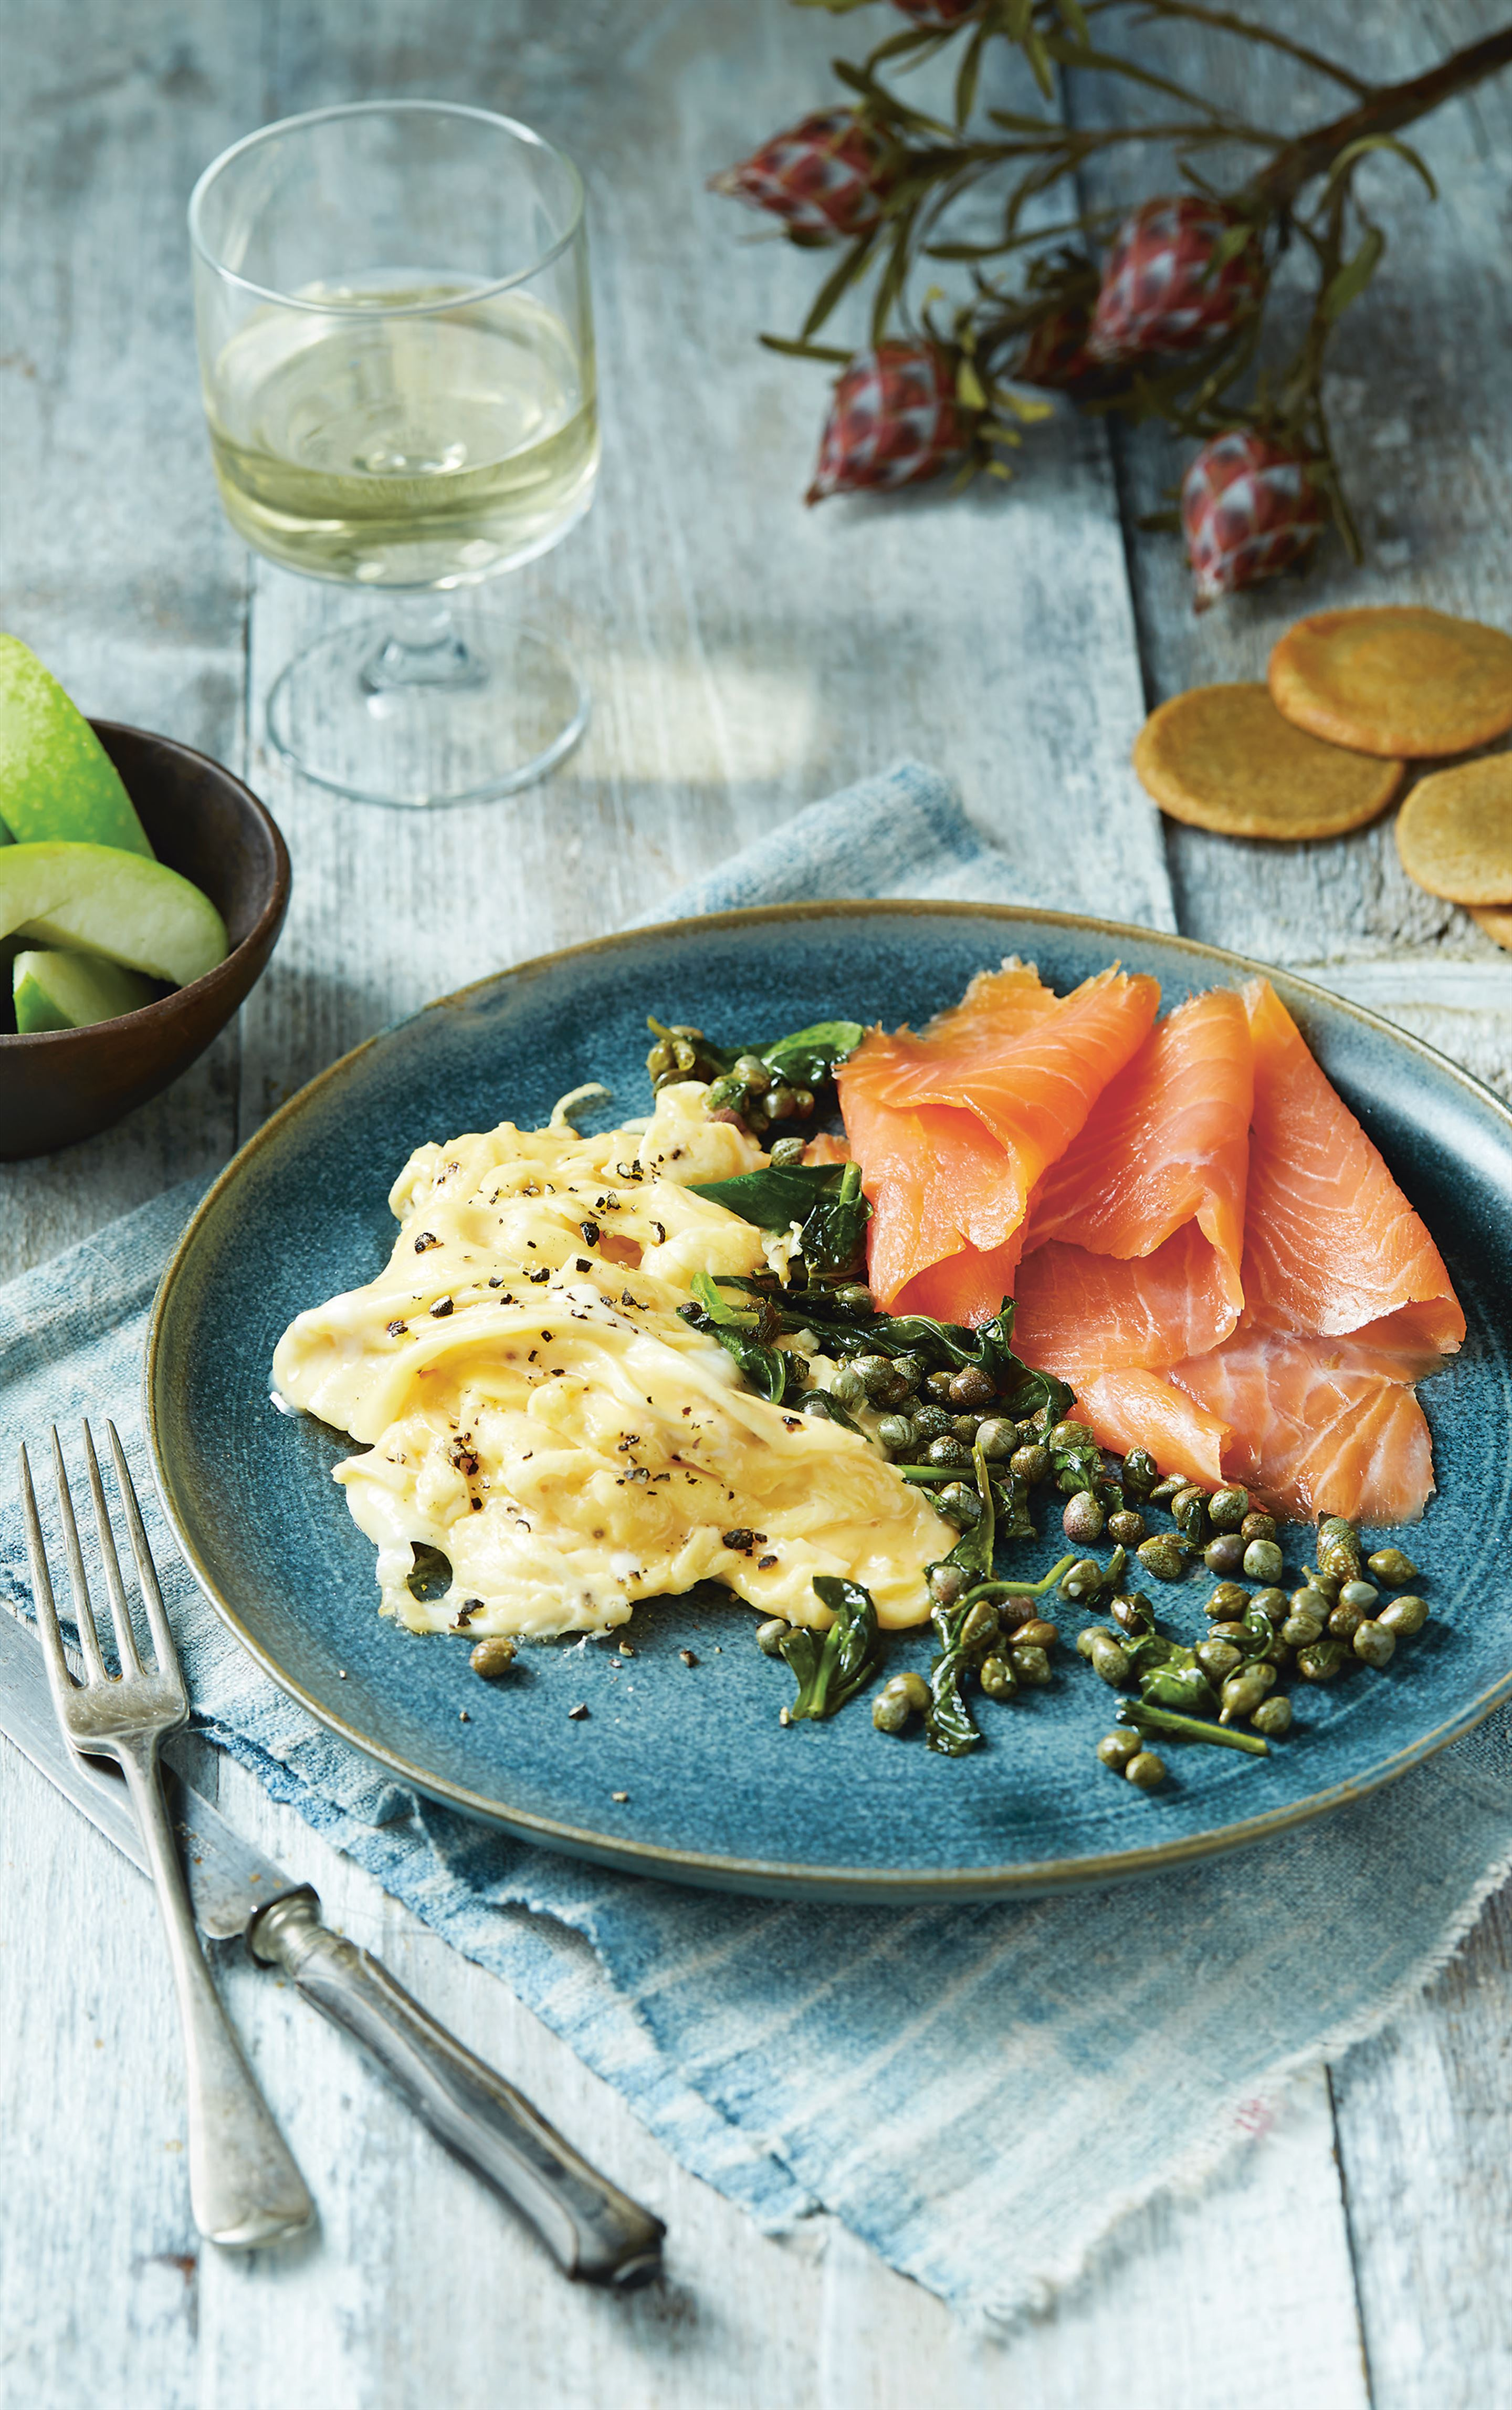 Smoked salmon and eggs with capers and quinoa crackers